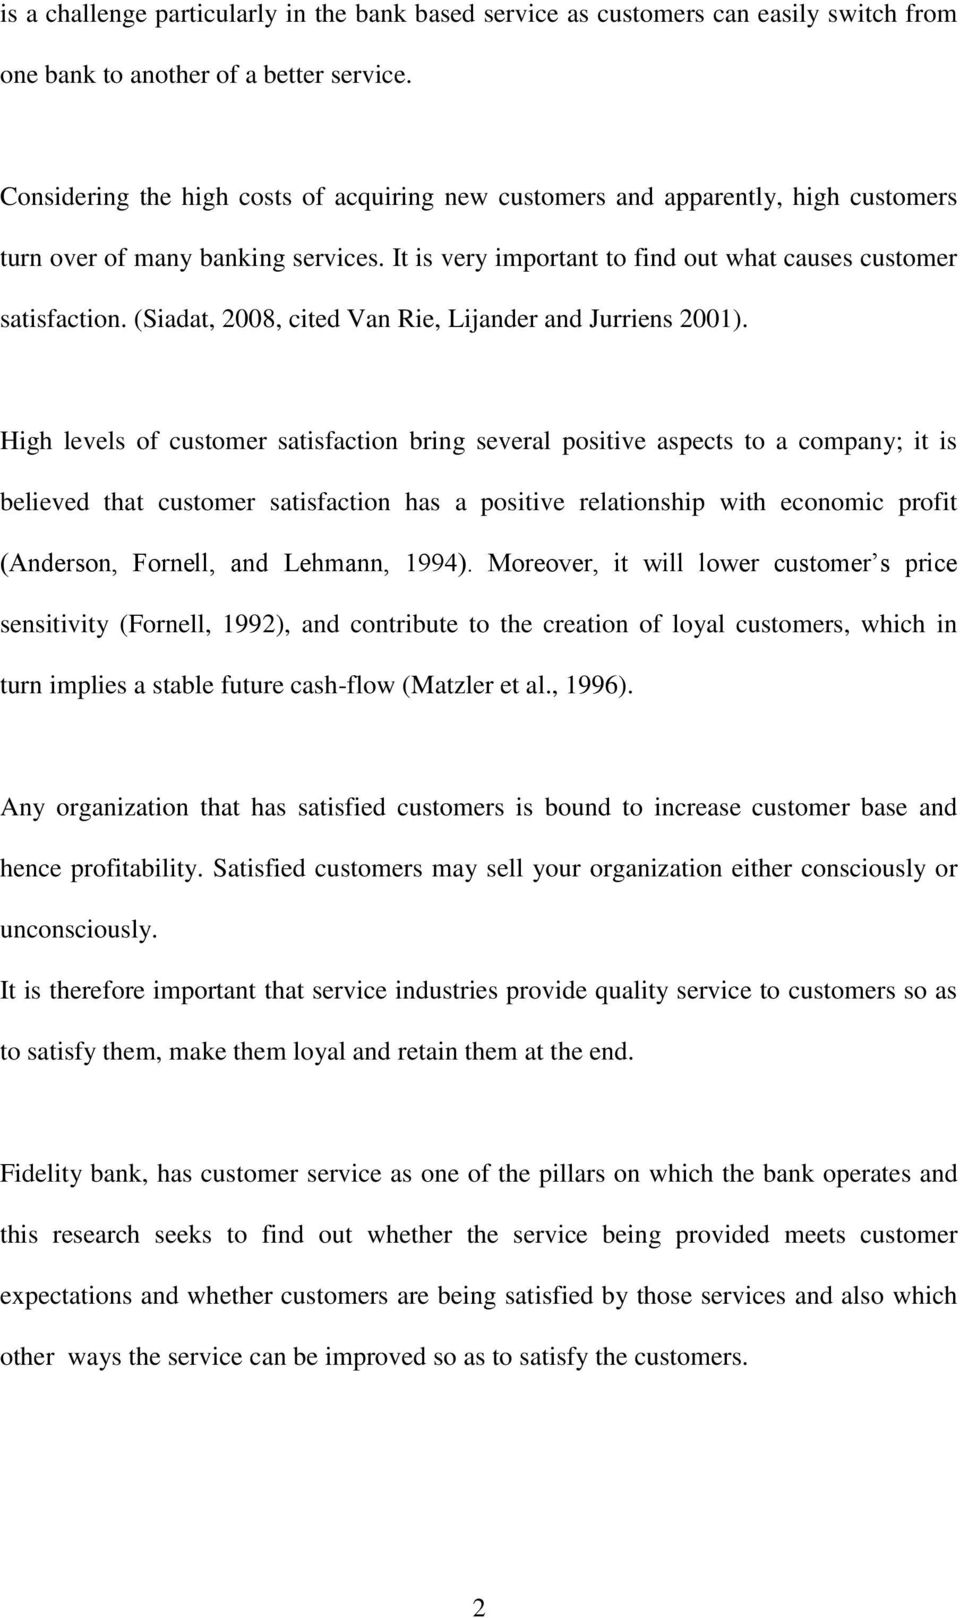 loyalty essay thesis Three essays on the customer satisfaction-customer loyalty association by young han bae an abstract of a thesis submitted in partial fulfillment.